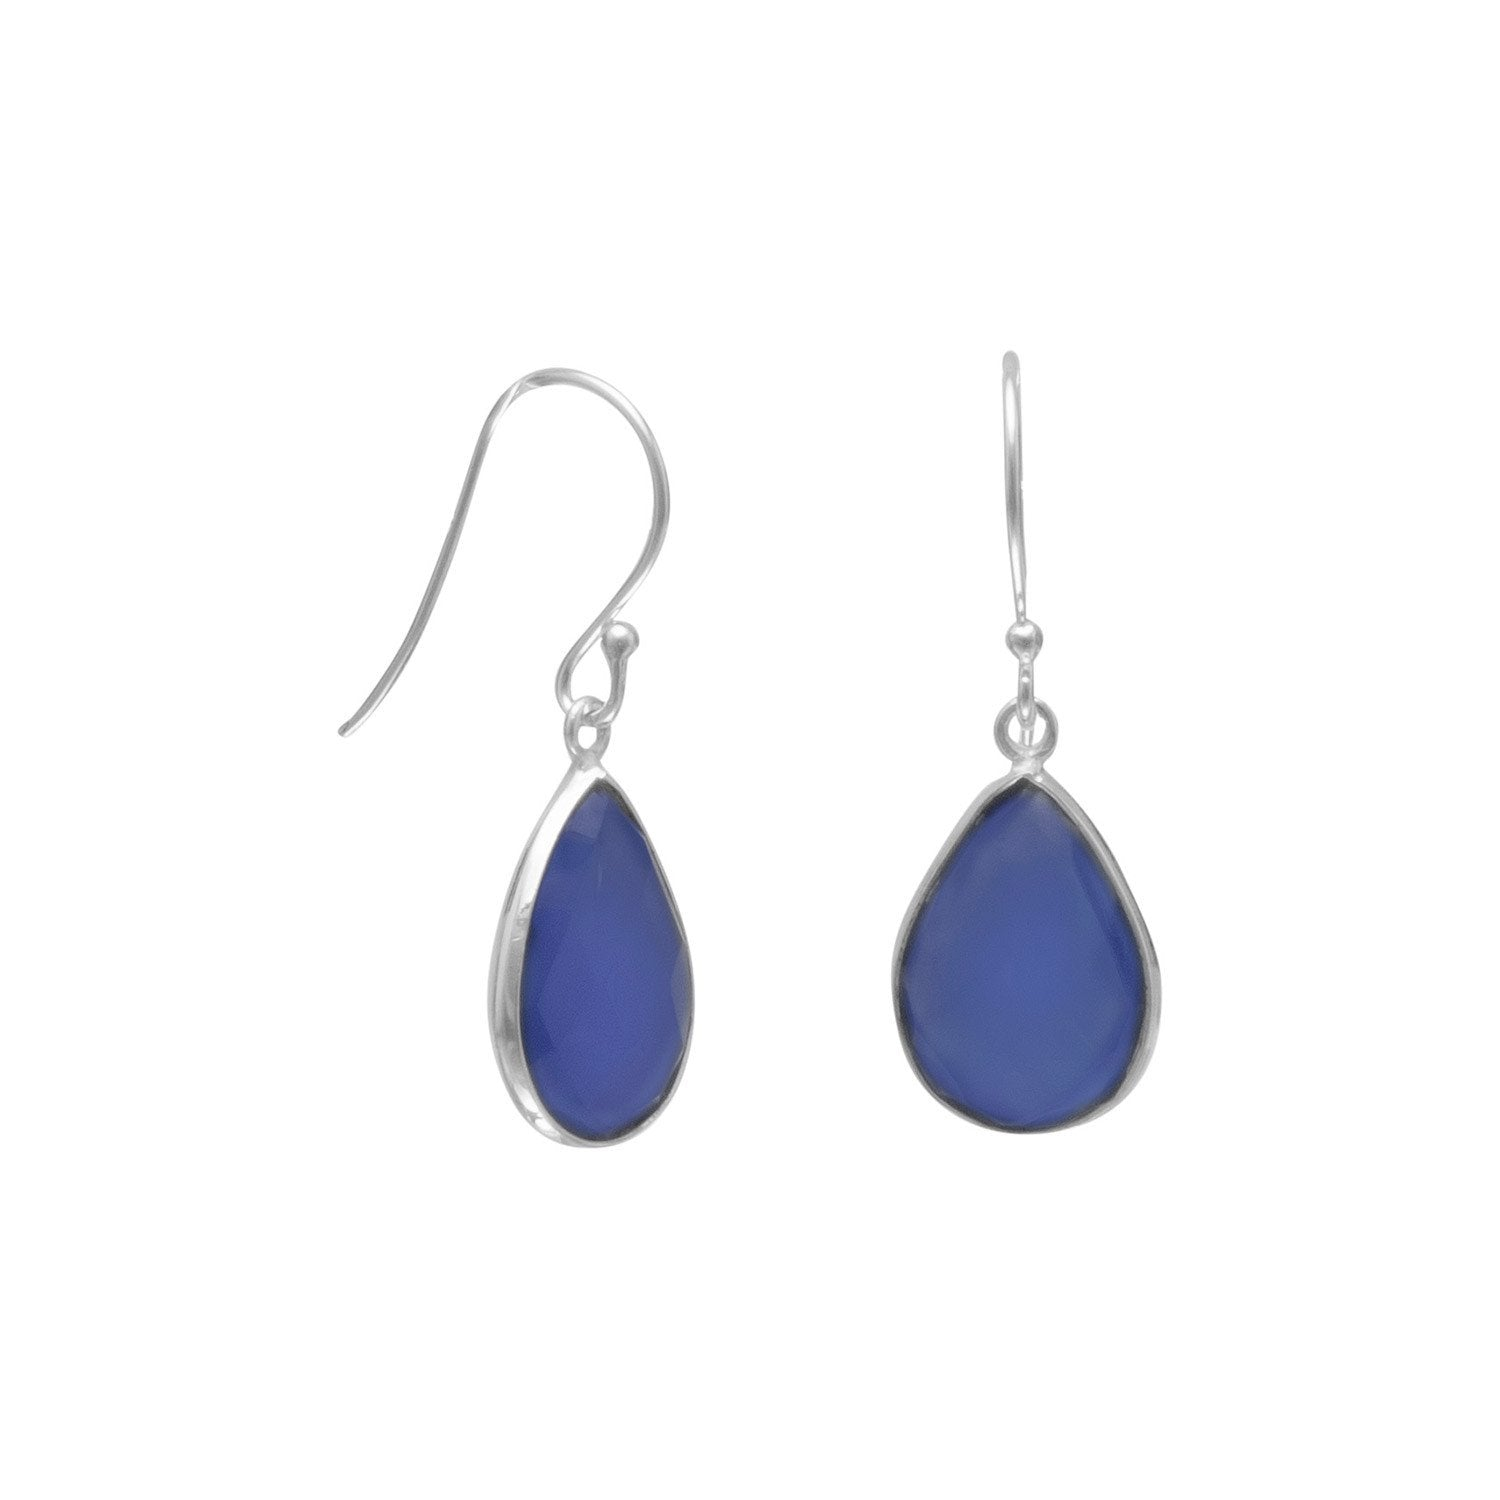 Genuine Sterling Silver Blue Chalcedony French Wire Earrings - Rocky Mt. Outlet Inc - Shop & Save 24/7